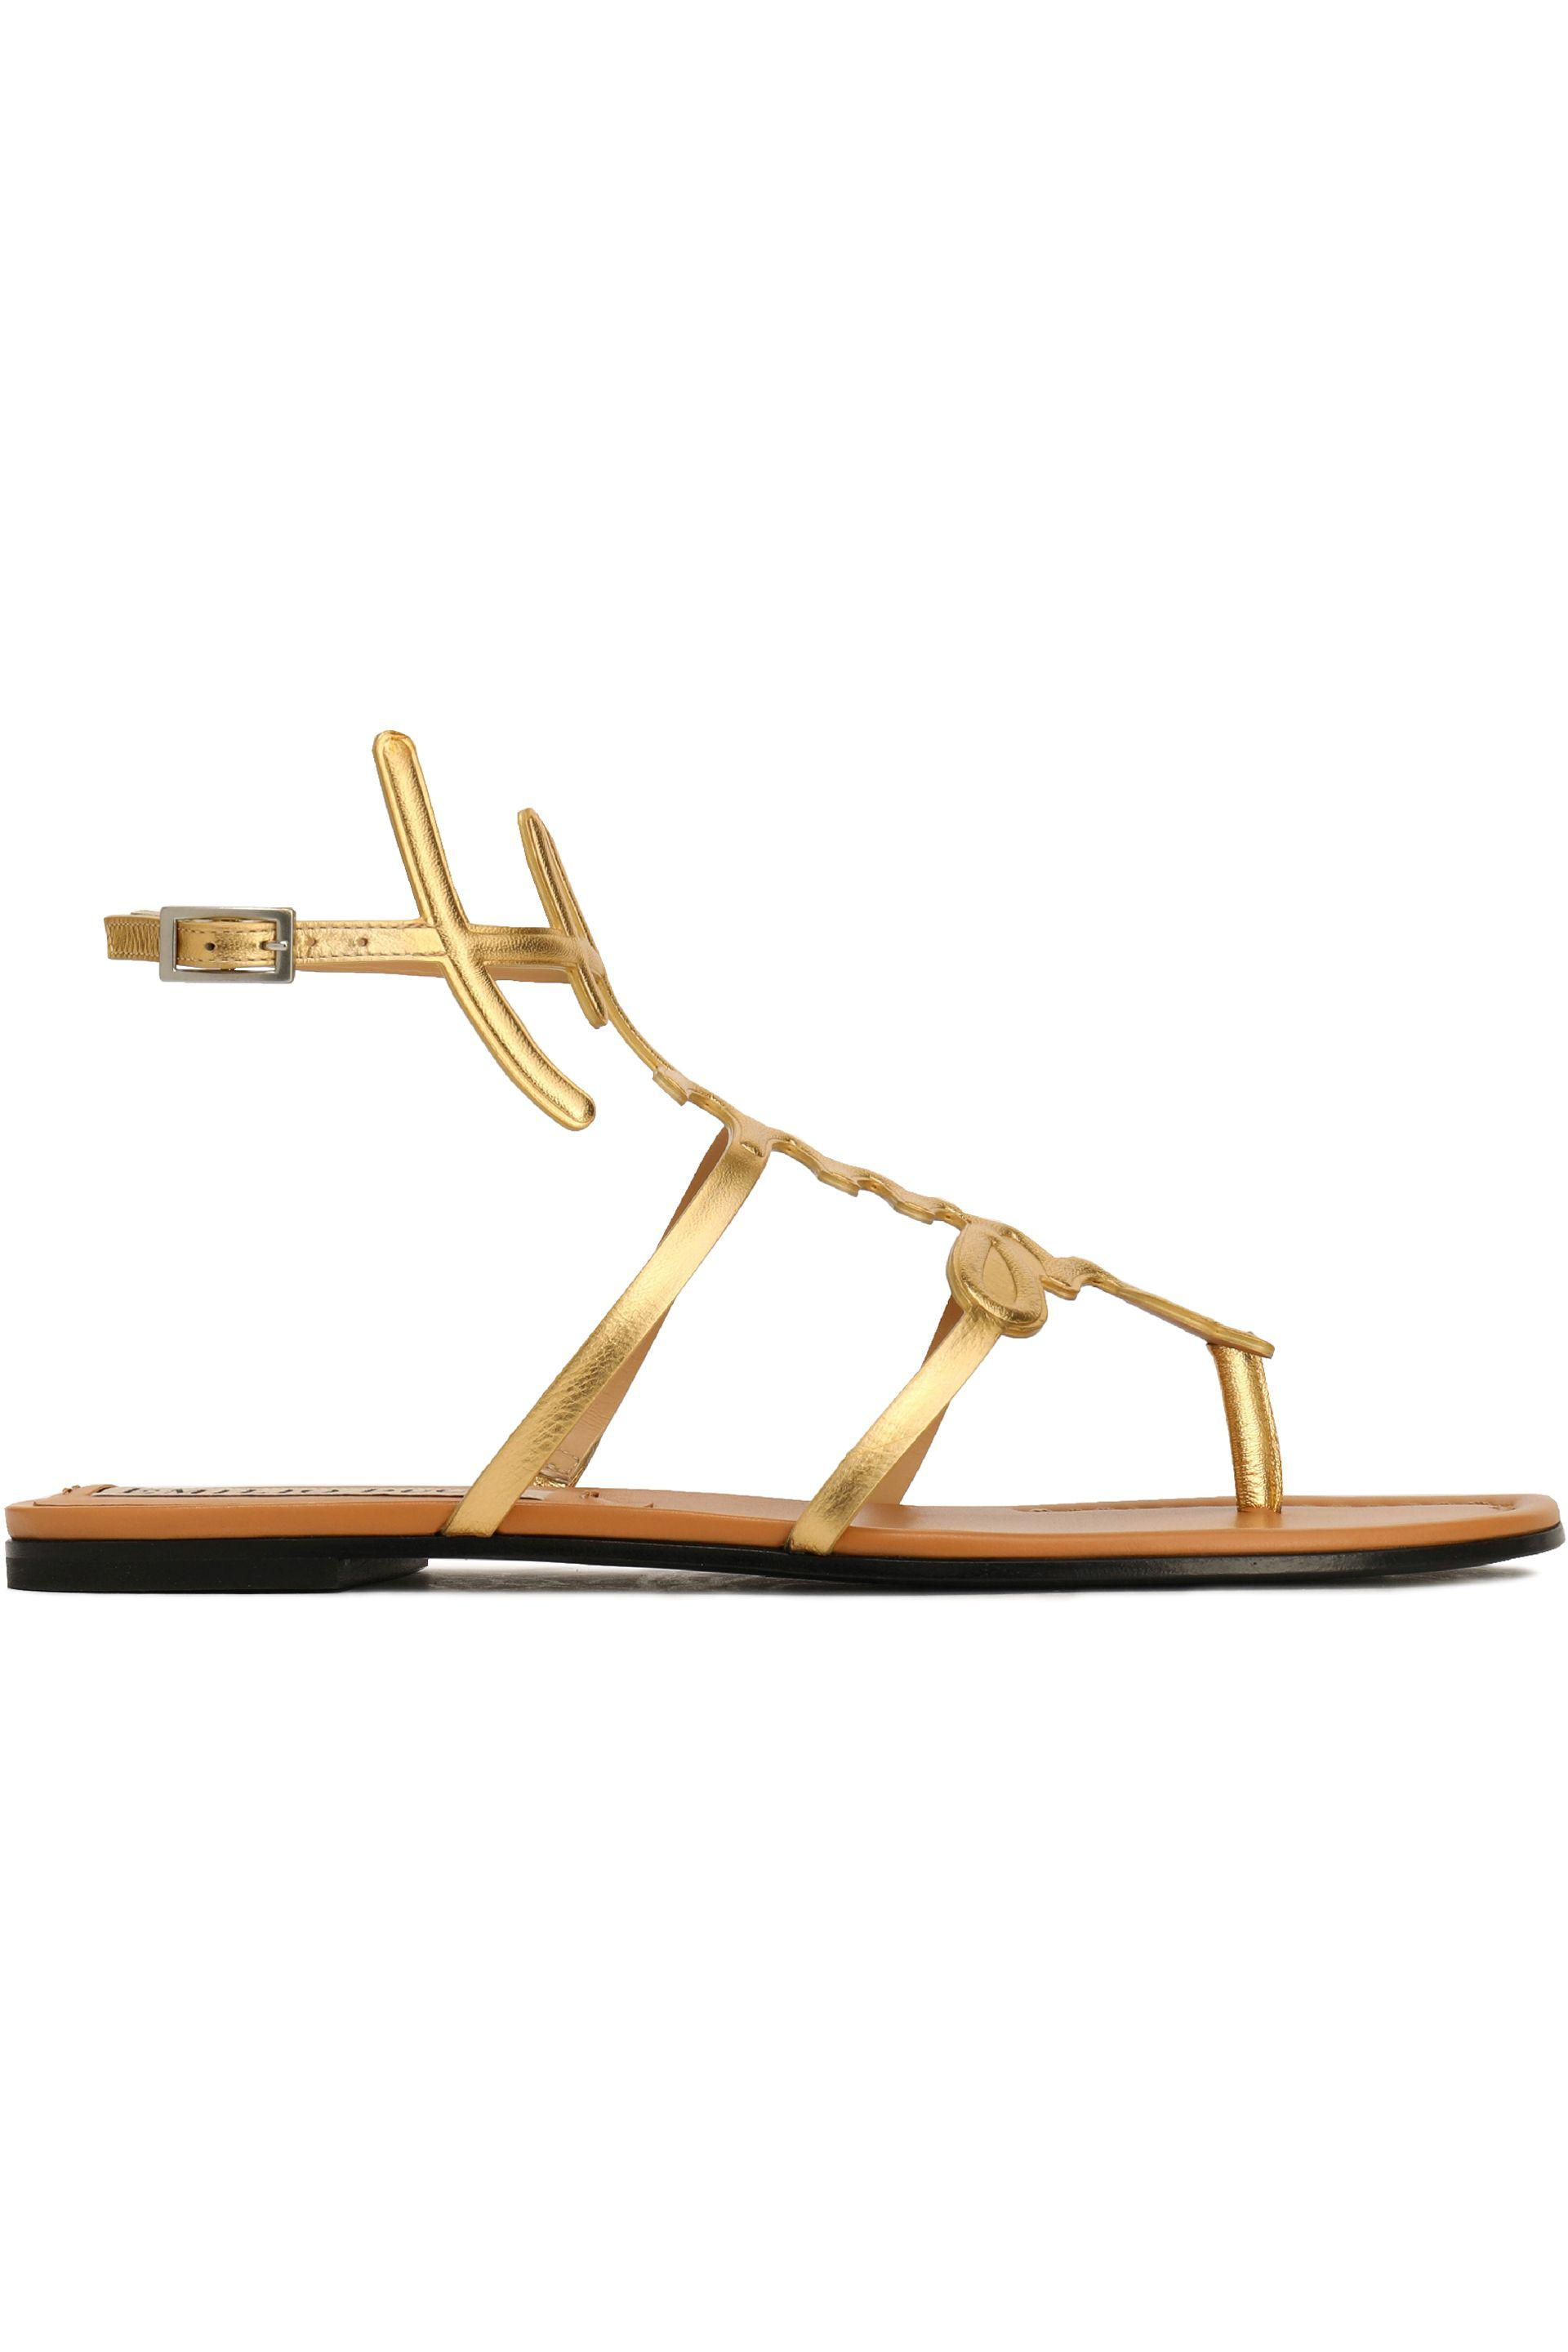 strappy flat sandals - Metallic Emilio Pucci For Cheap Ac0nwPxCQ